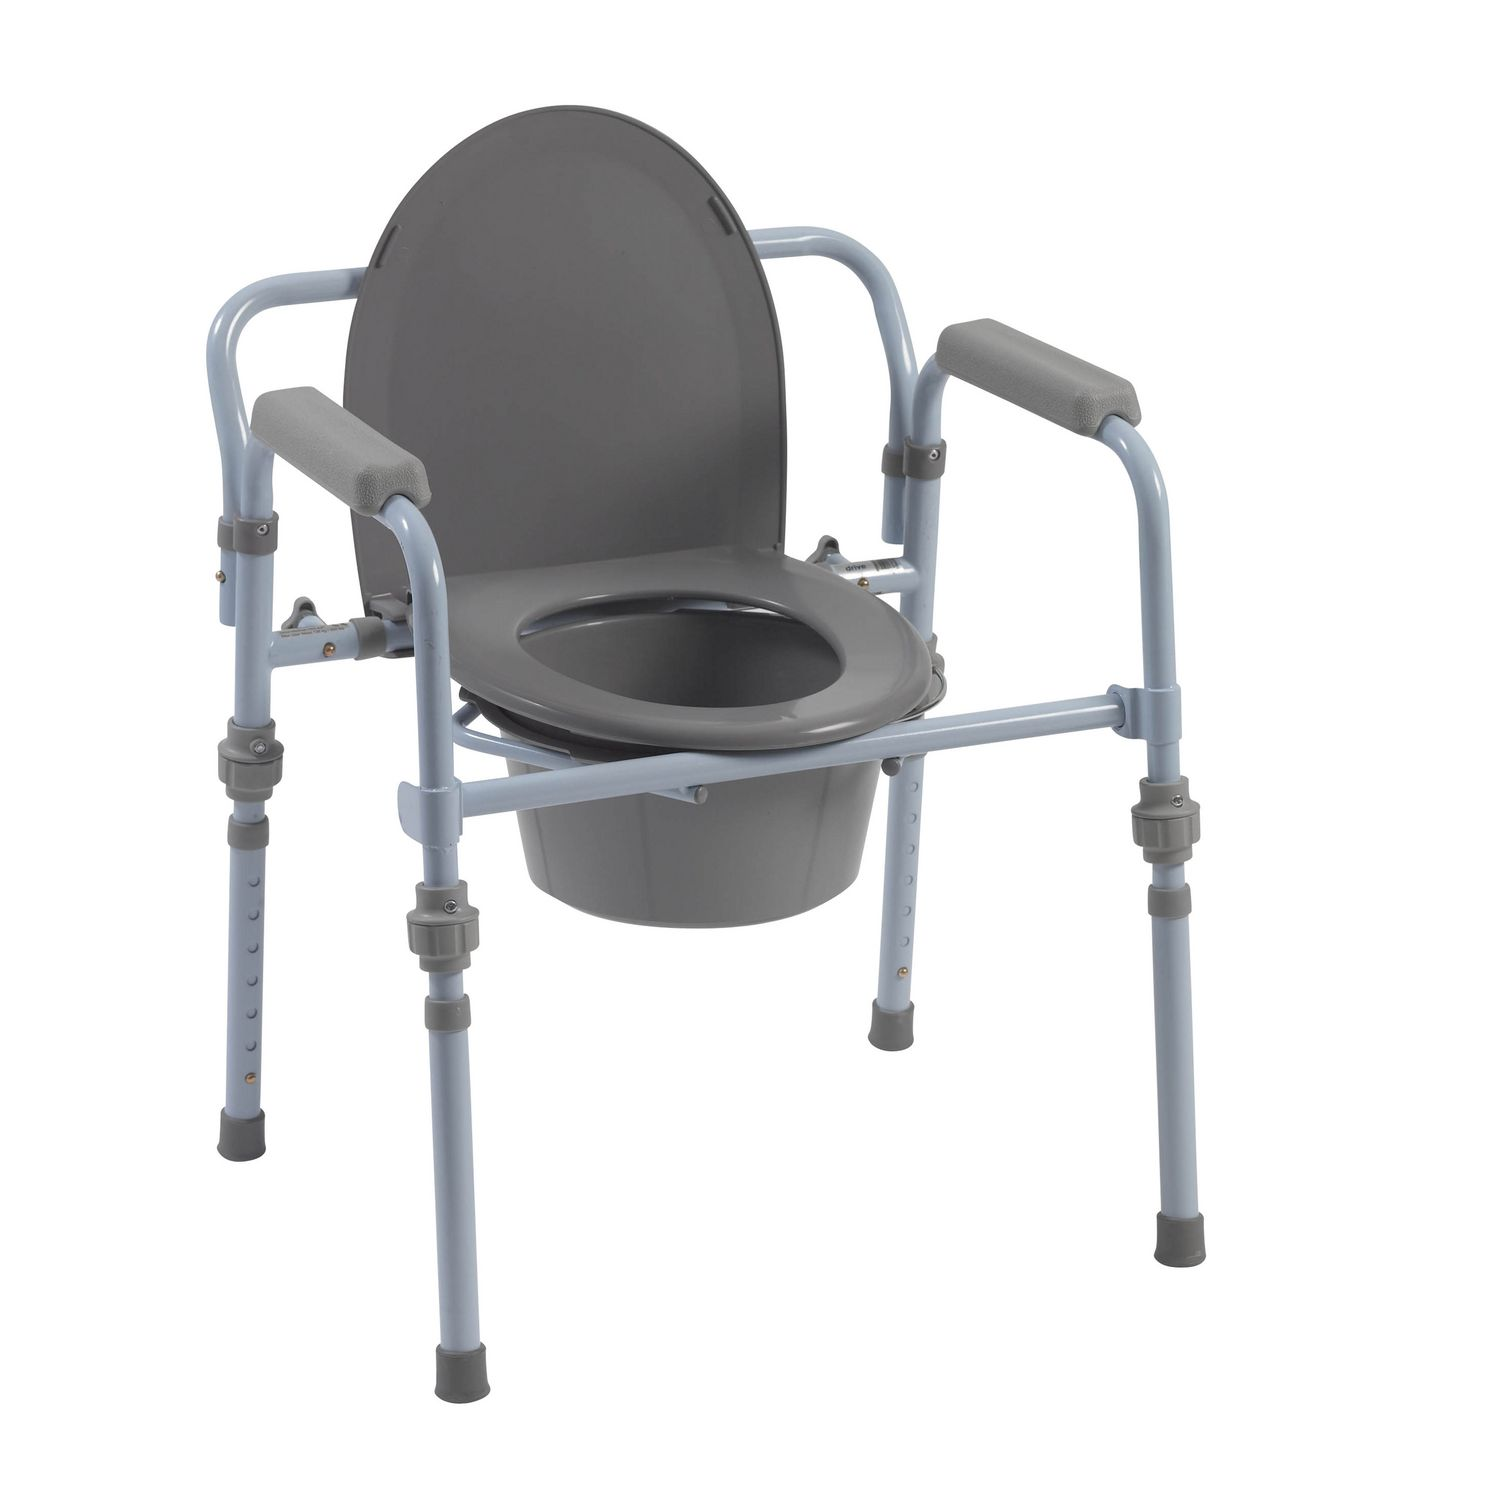 Drive Medical Folding Bedside mode with Bucket and Splash Guard